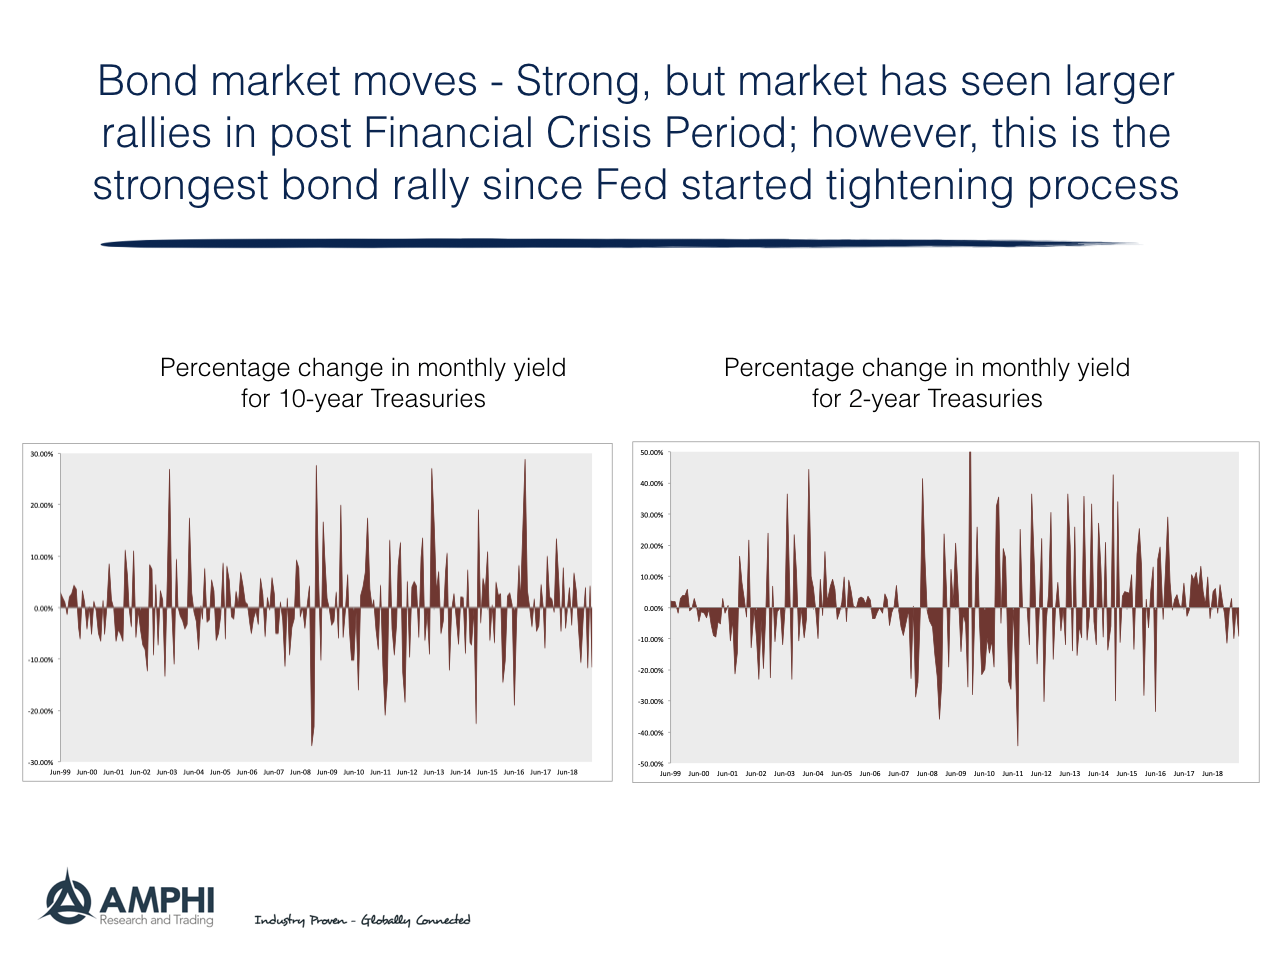 Disciplined Systematic Global Macro Views: Strong bond rally but we